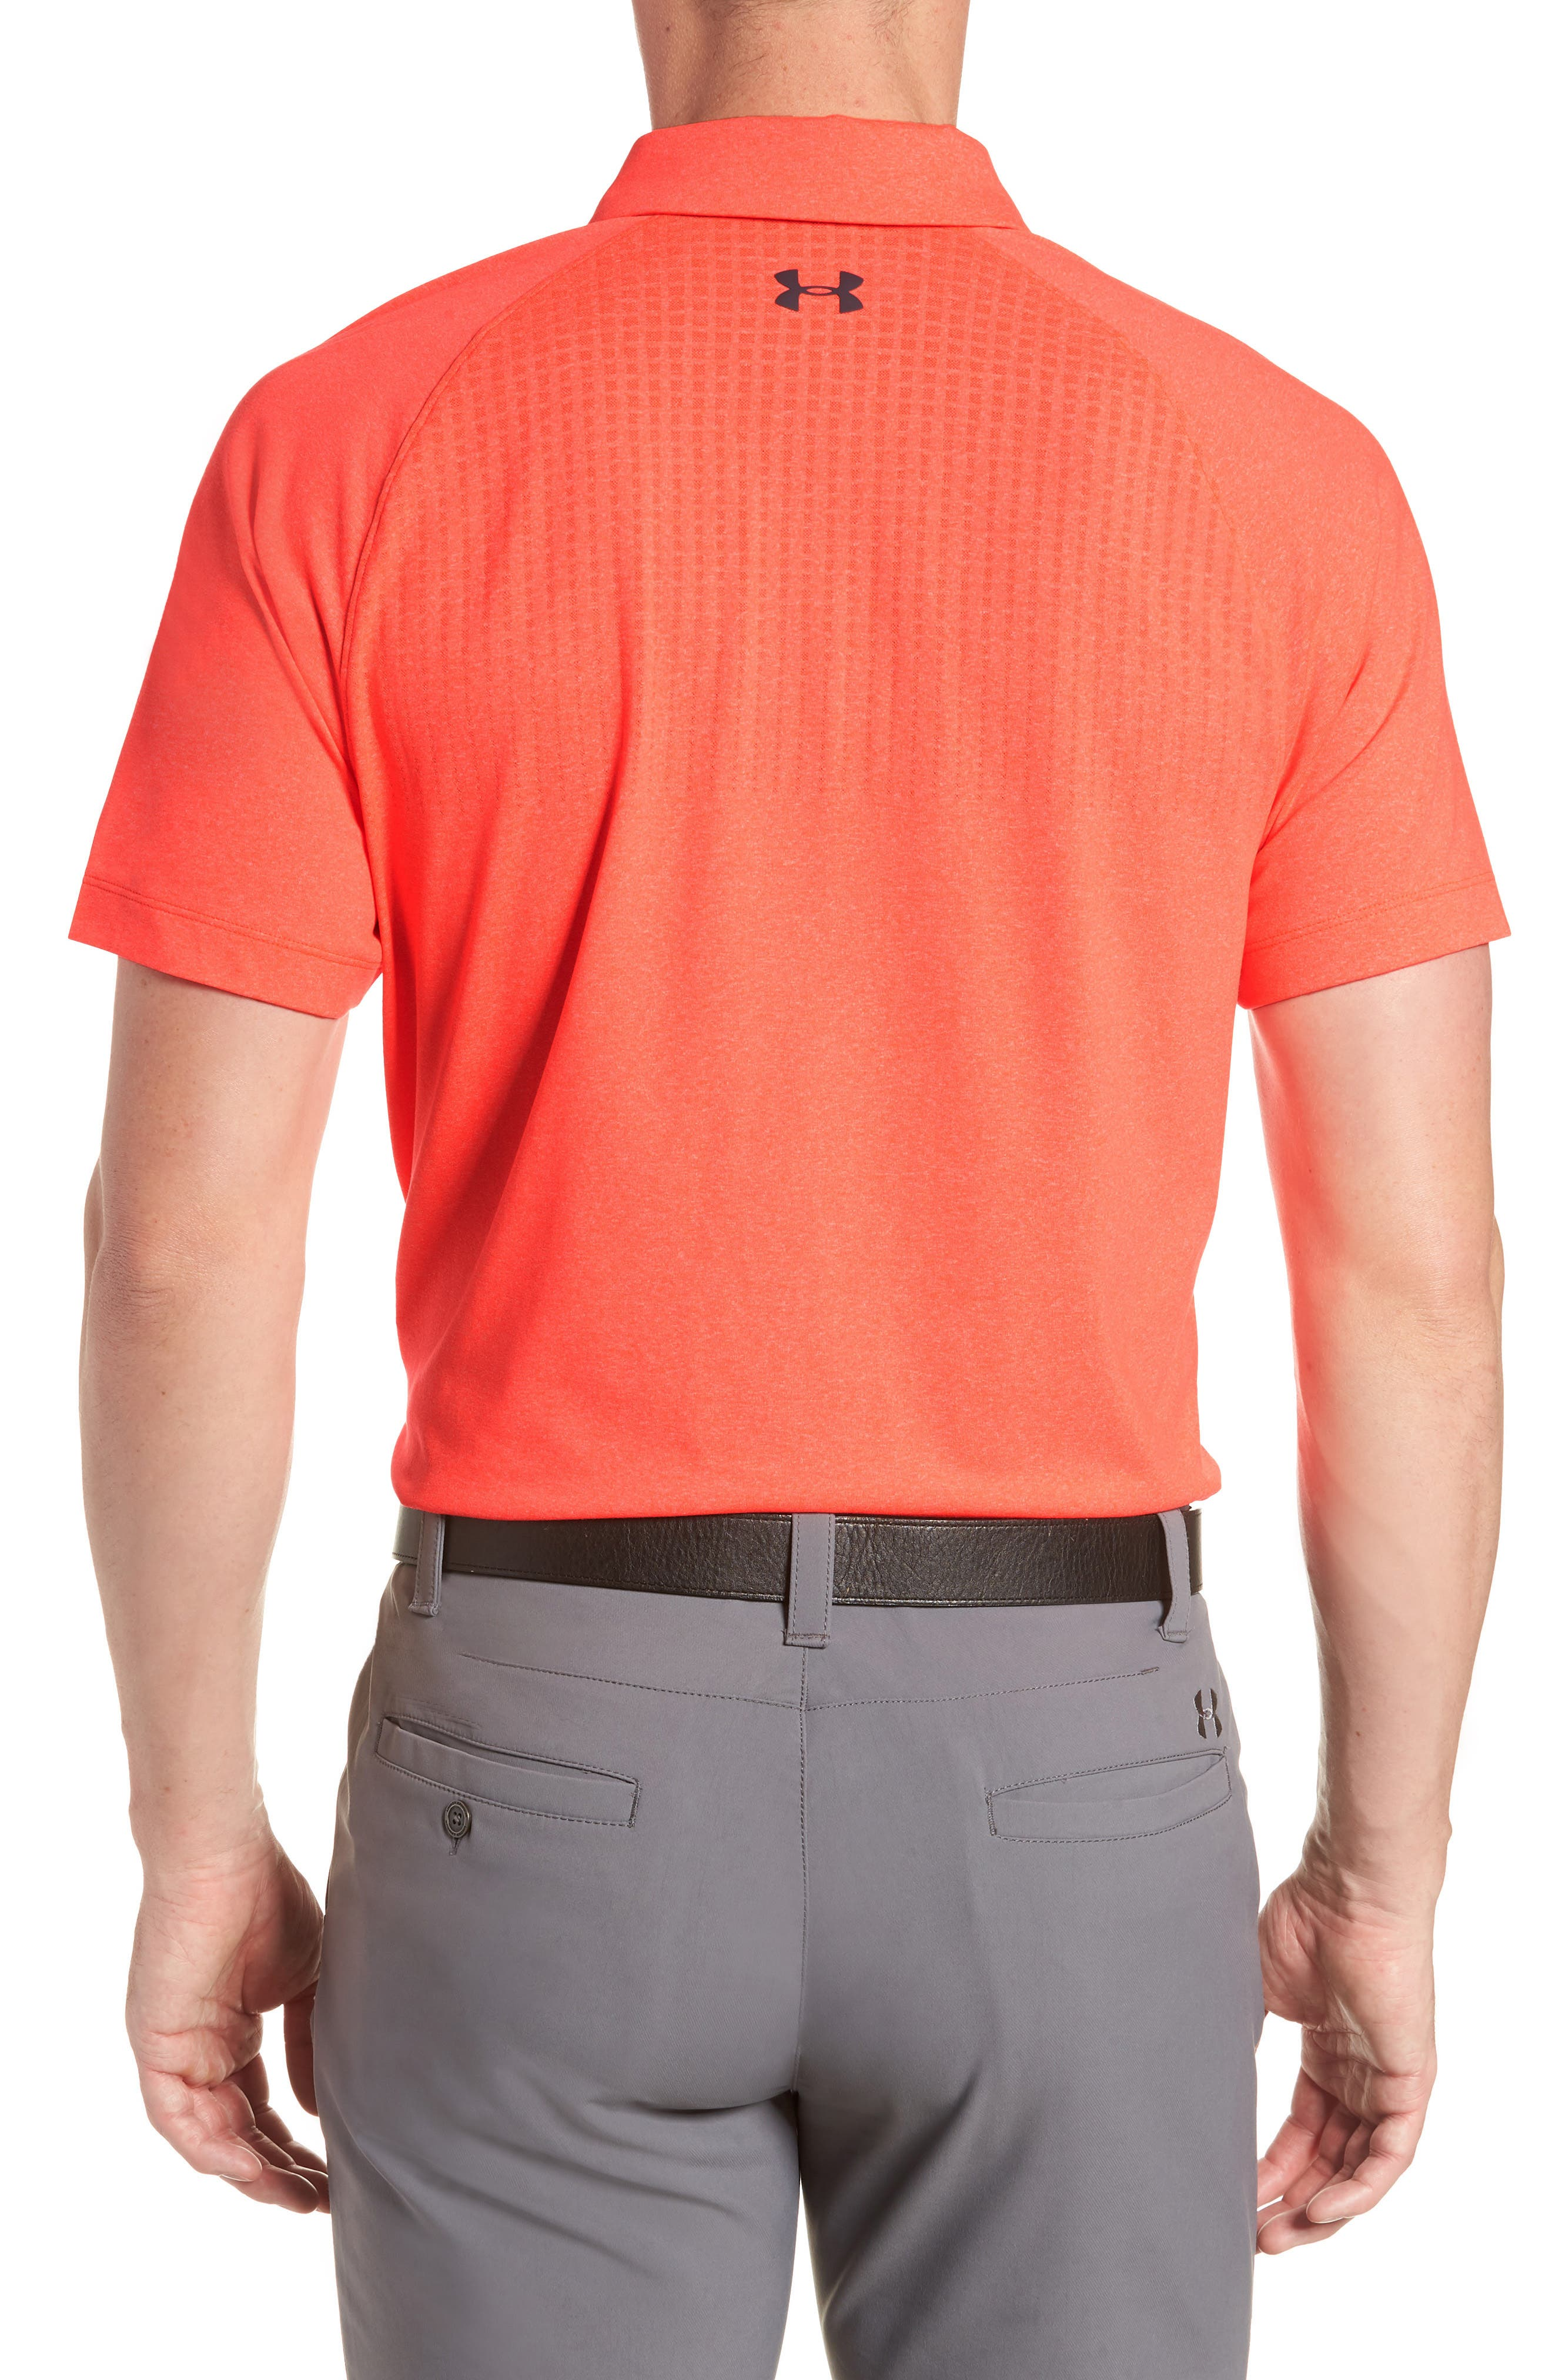 Threadborne Outer Glow Regular Fit Polo Shirt,                             Alternate thumbnail 2, color,                             NEON CORAL LIGHT/ HEATHER